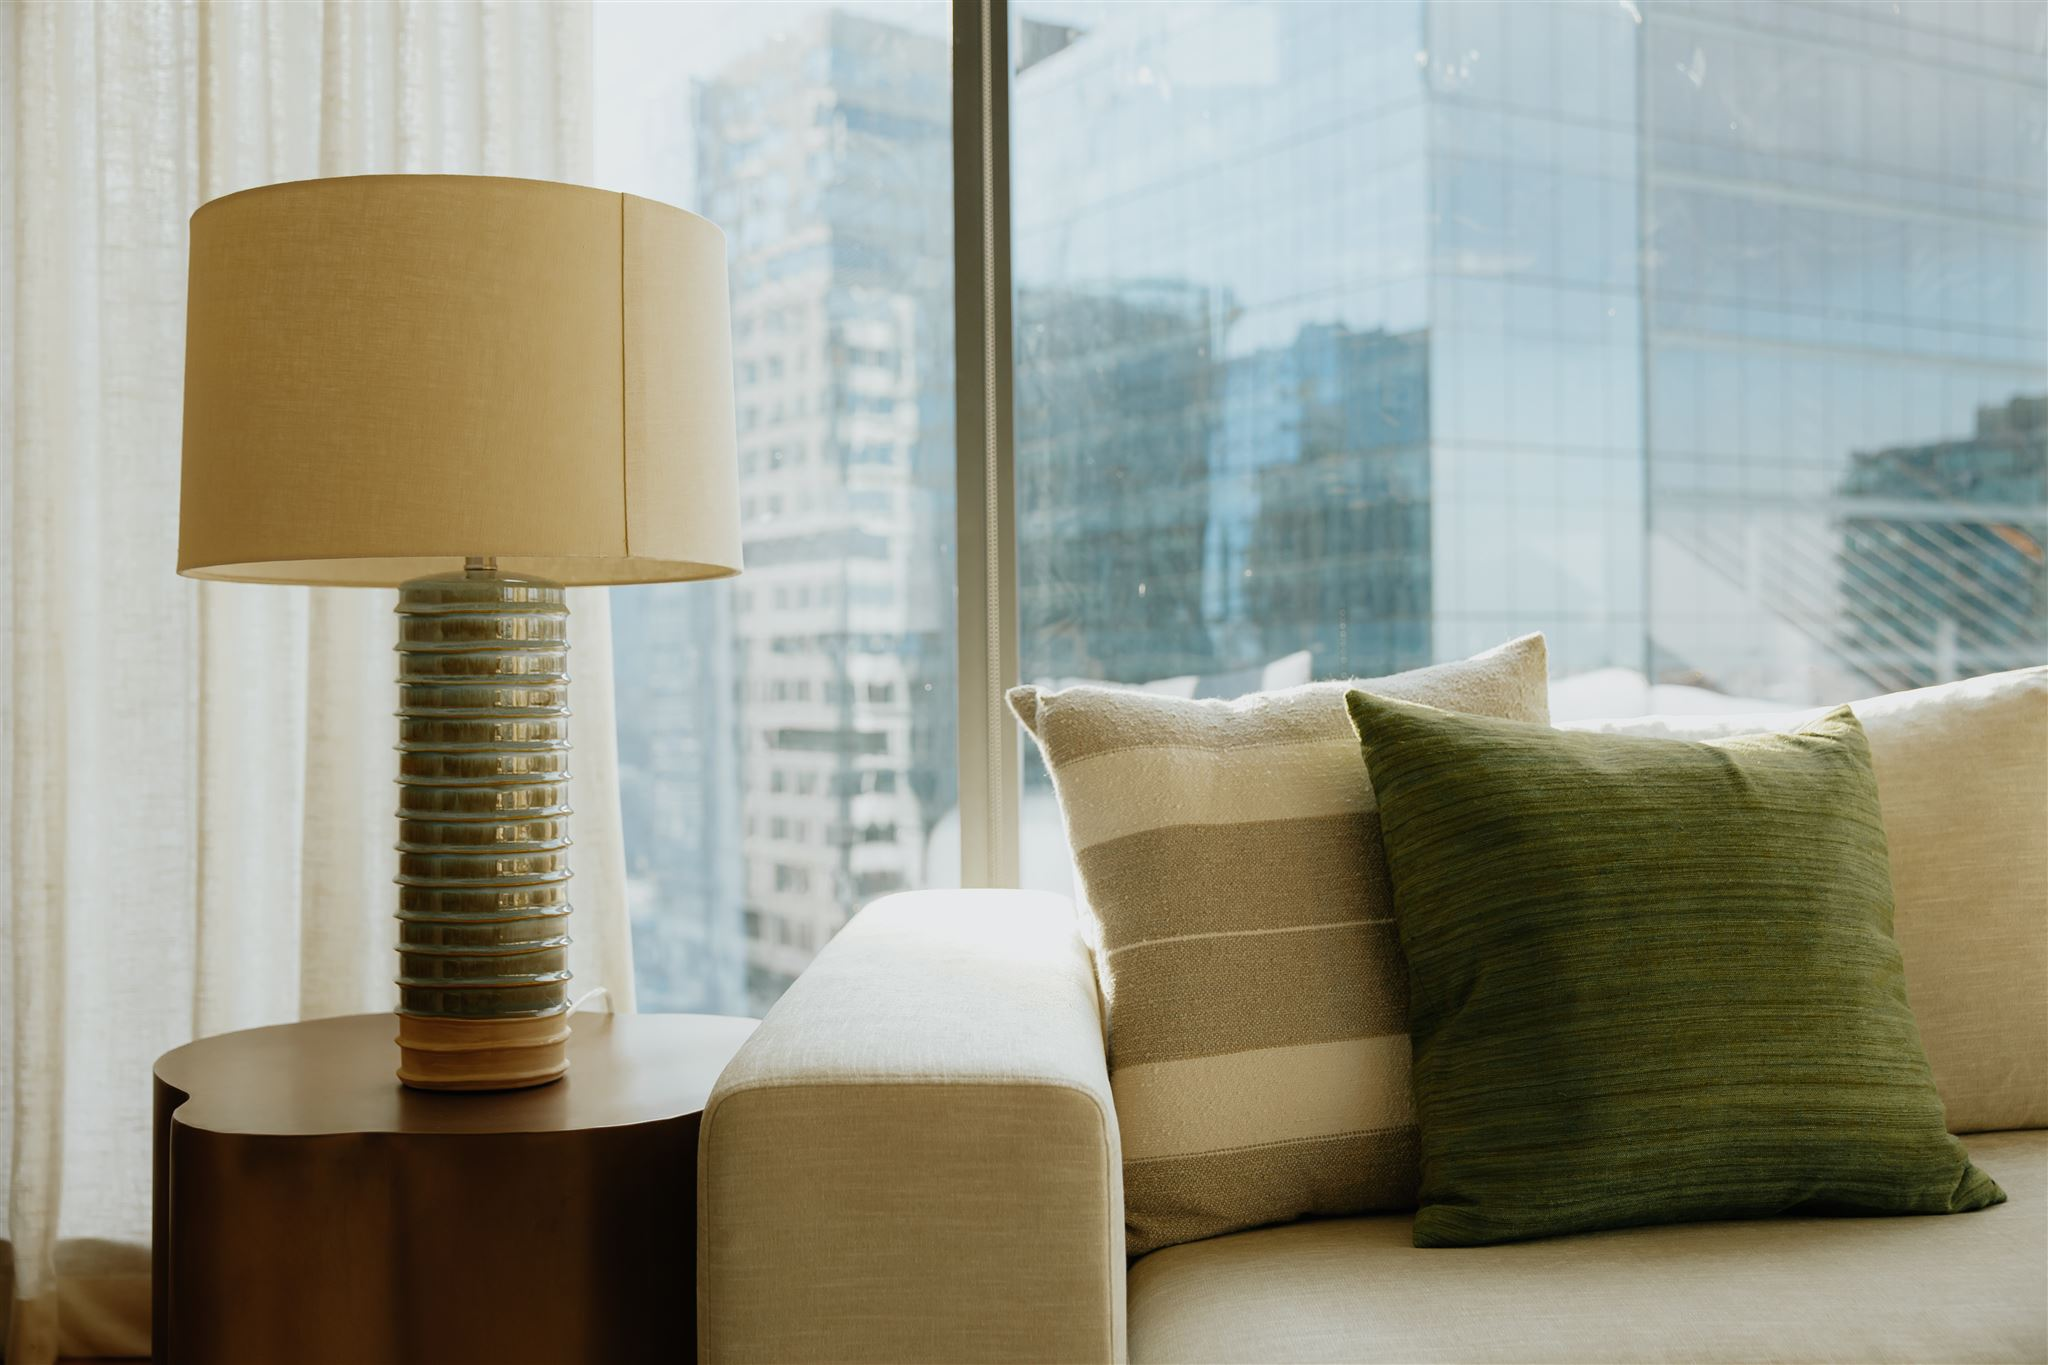 Couch and Lamp in front of Window   4 Things to Tell Your Real Estate Agent When Shopping for a House